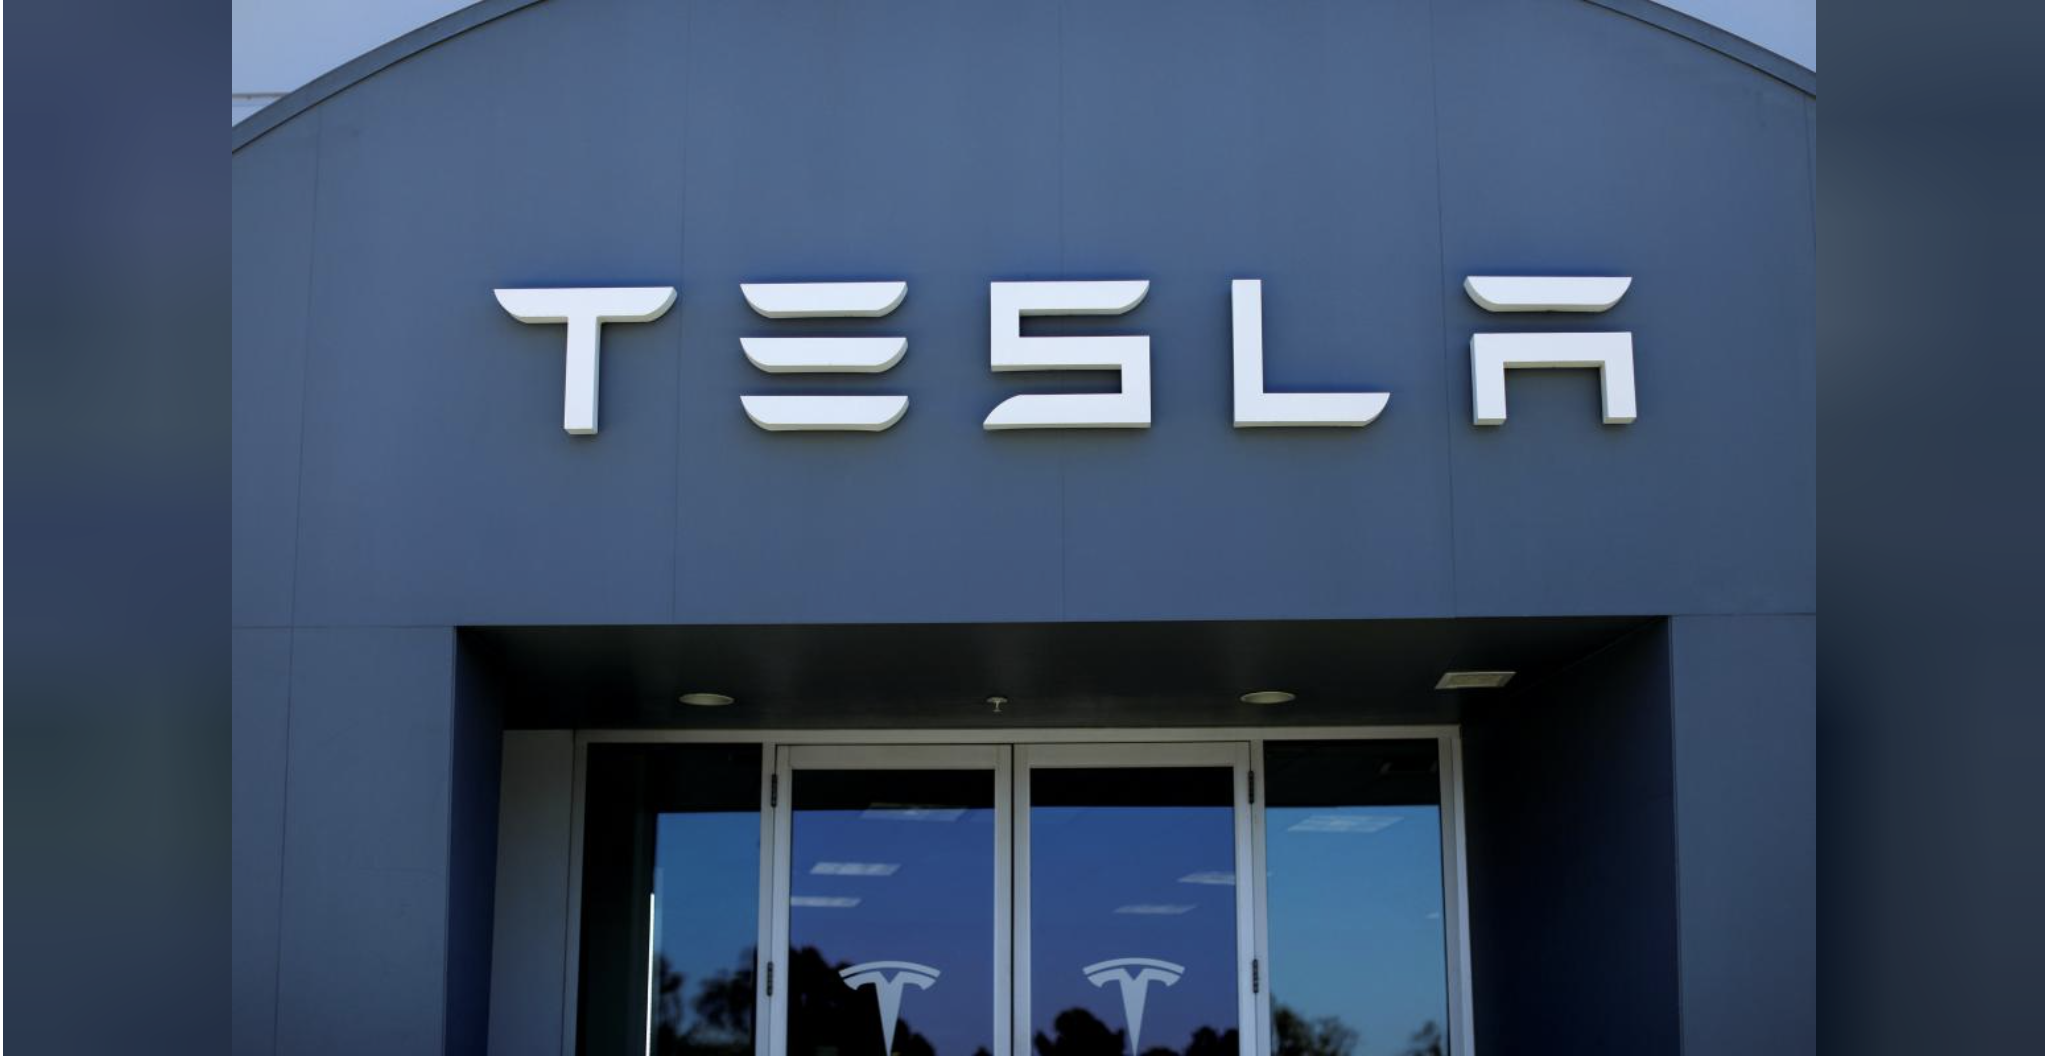 Saudi sovereign fund builds 3 to 5 percent stake in Tesla: FT